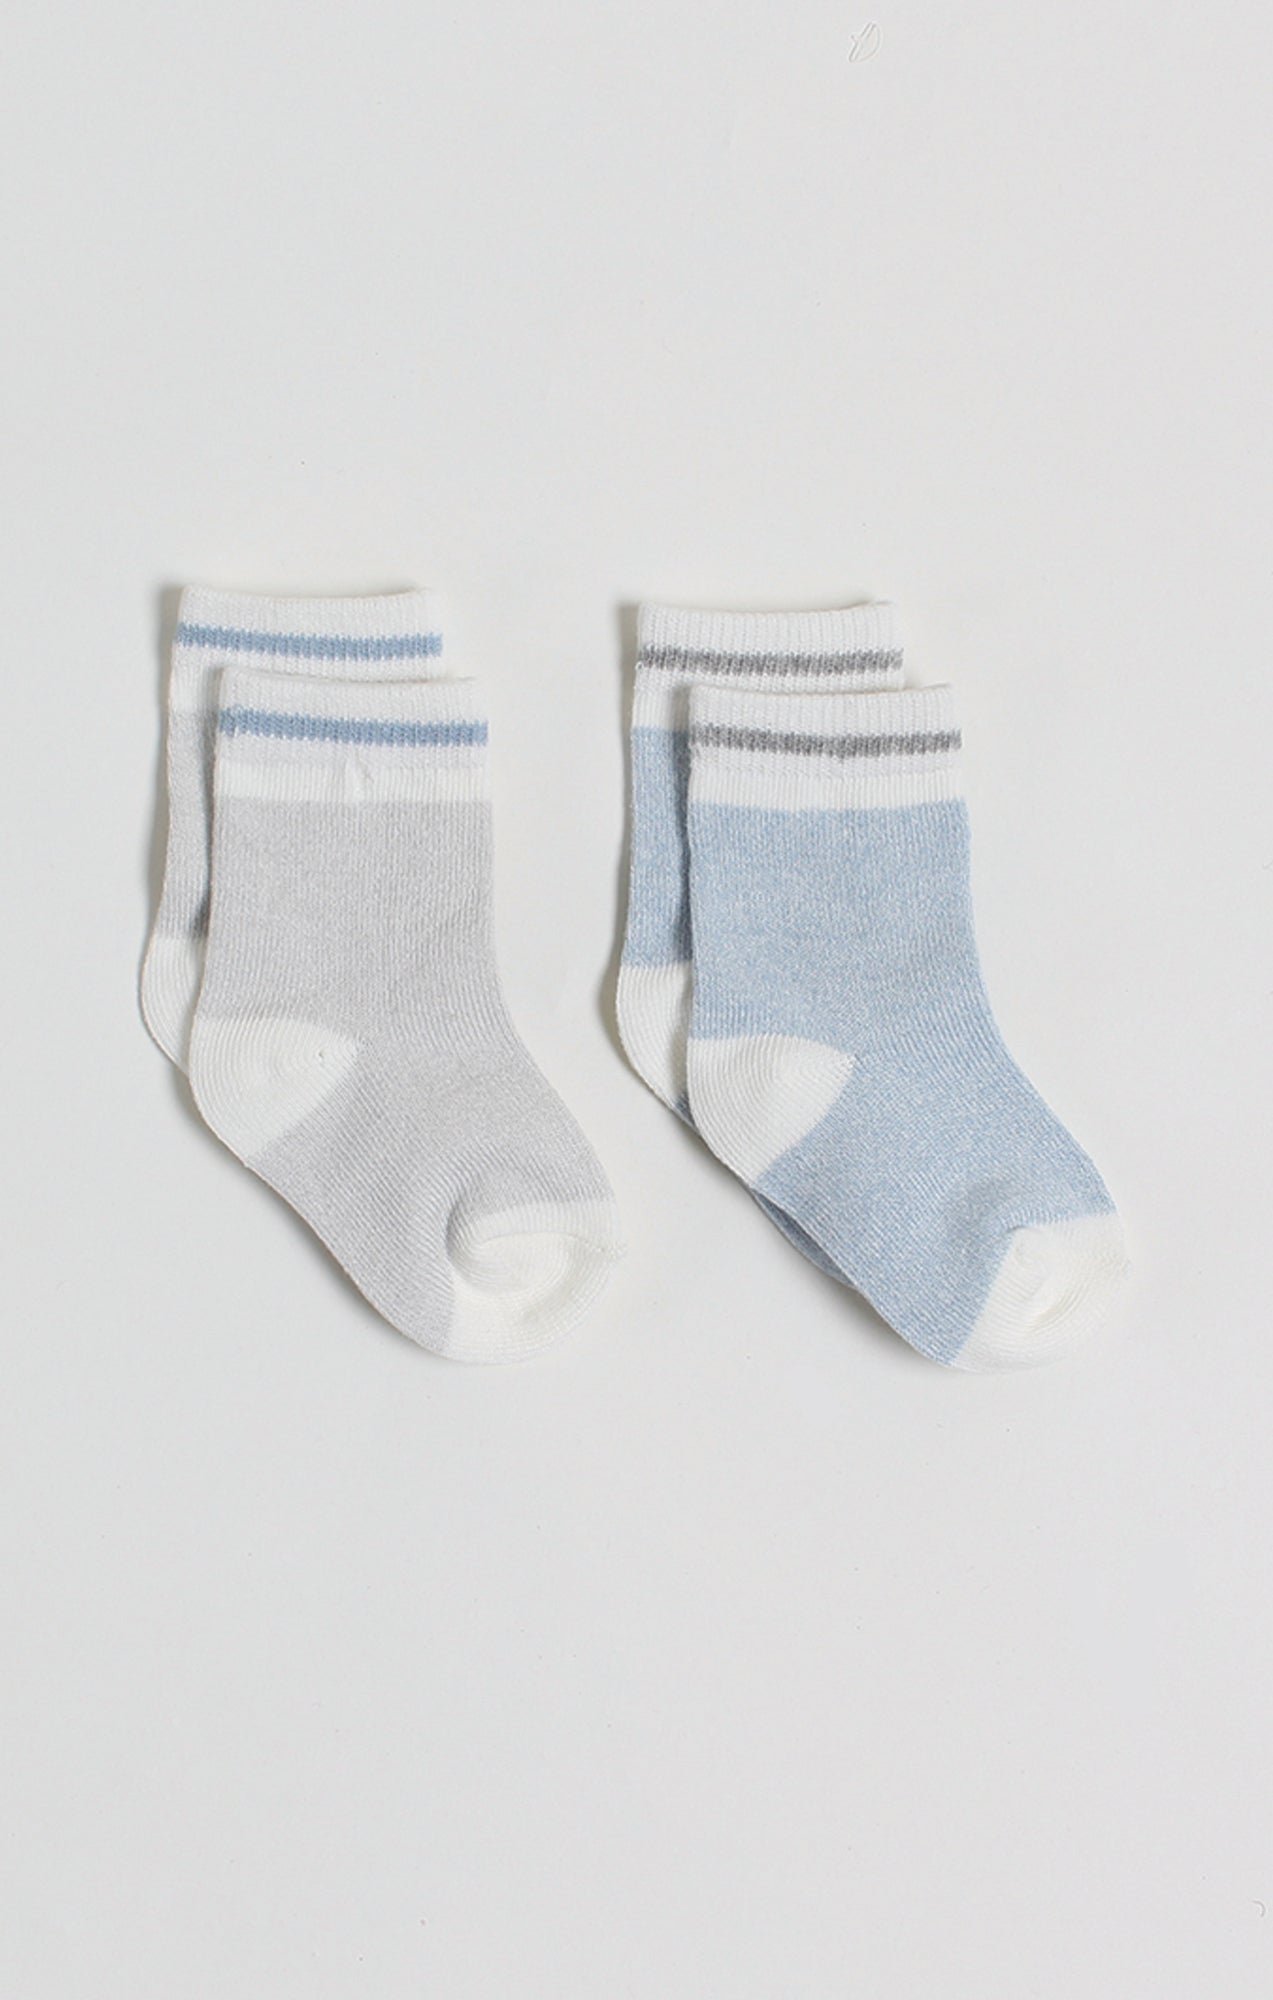 Socks - 2 Pk of Grey & Blue Baby Boy Boot Socks | Baby Accessories